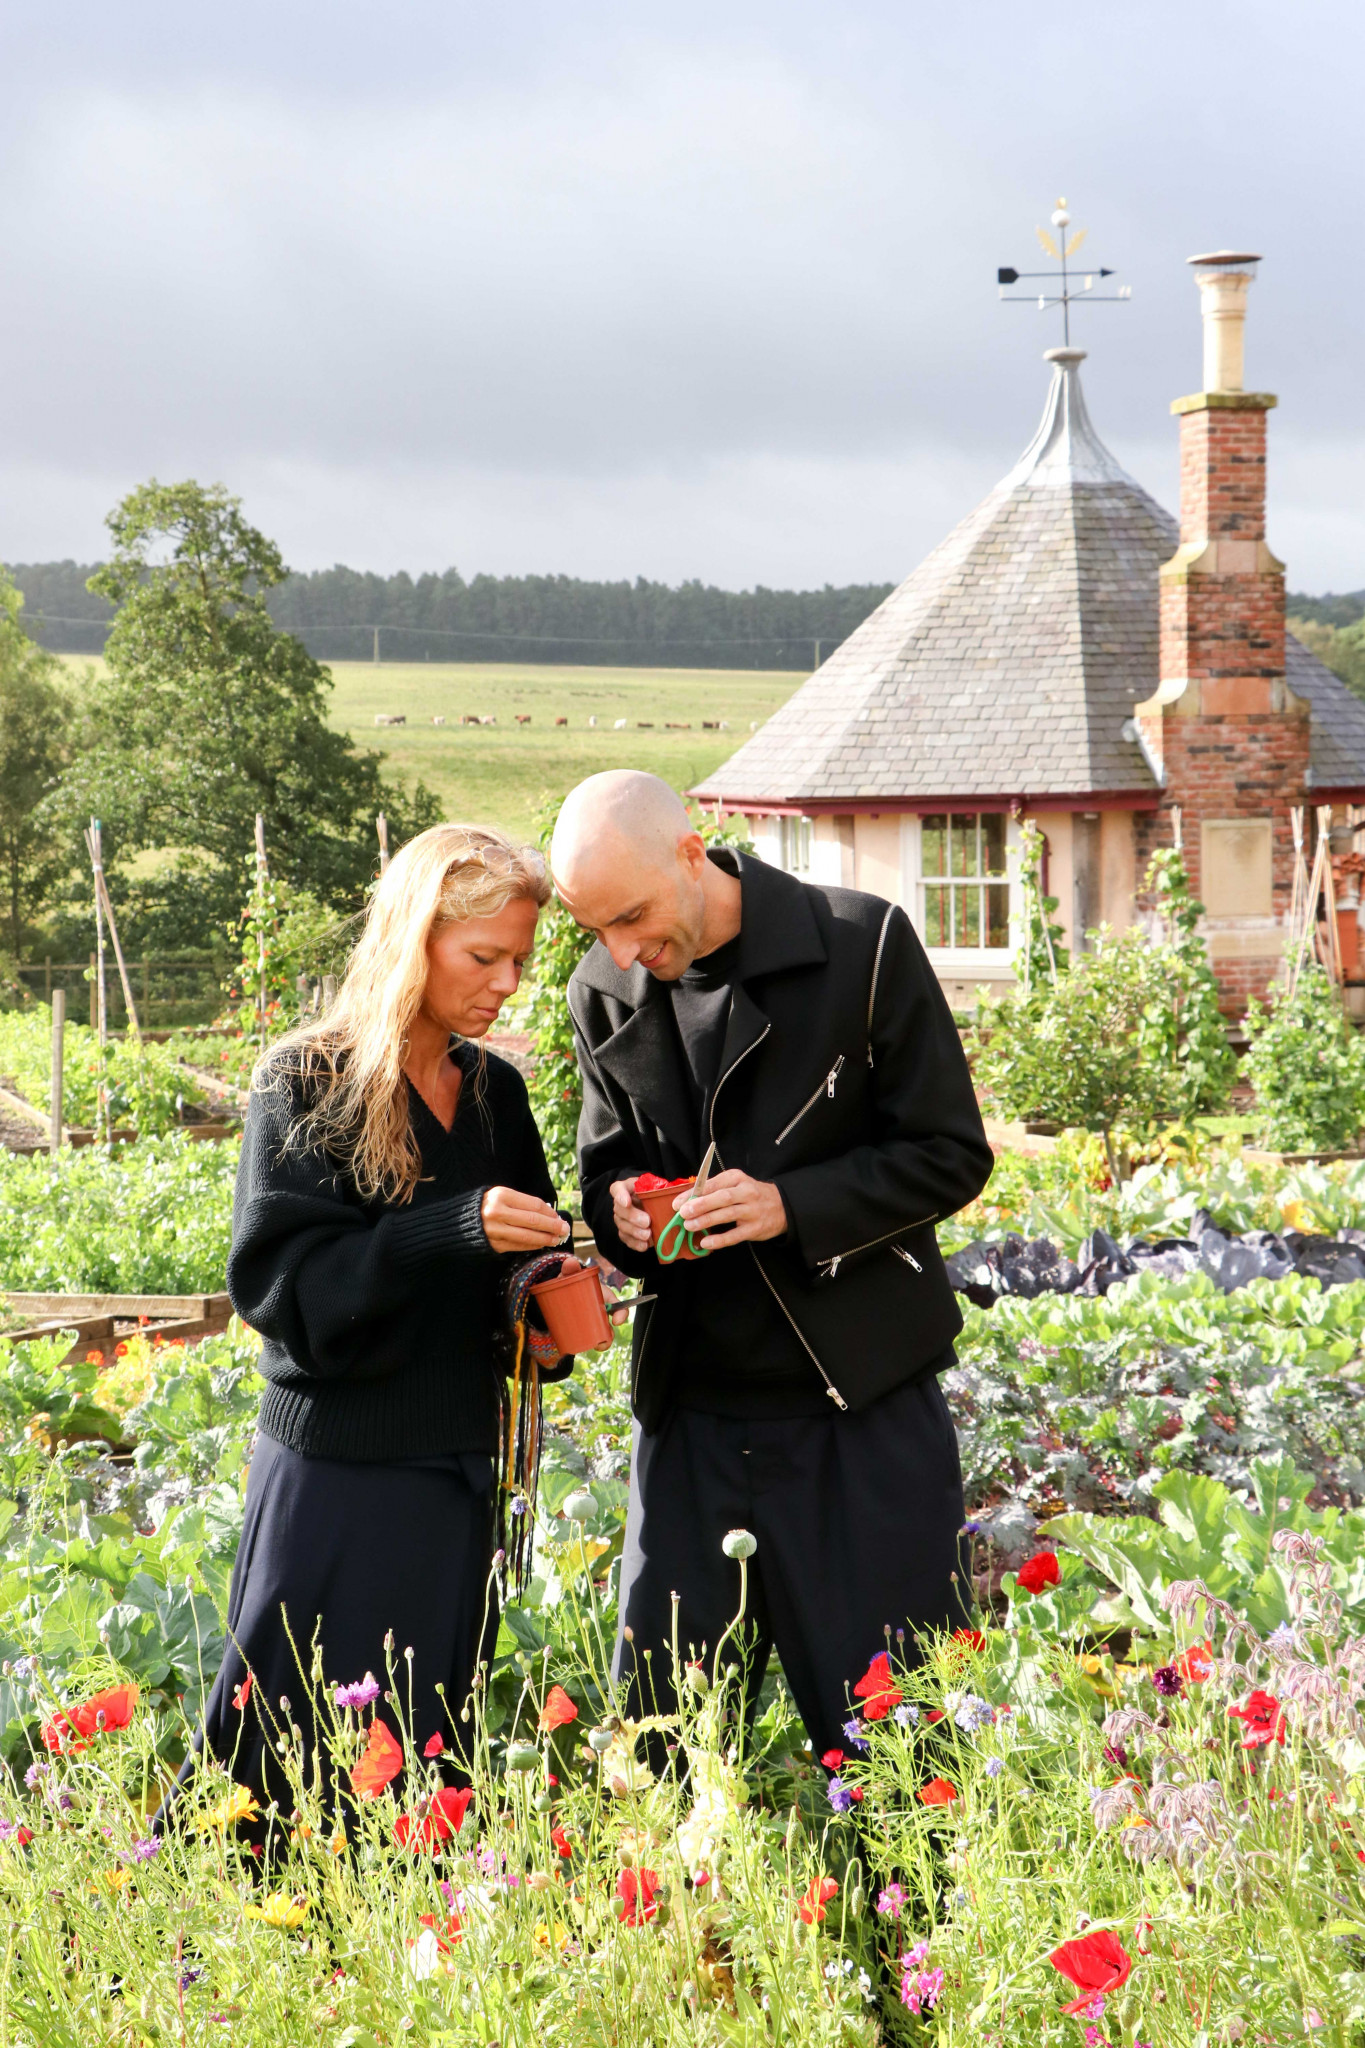 A man and a women standing in a garden looking at flowers